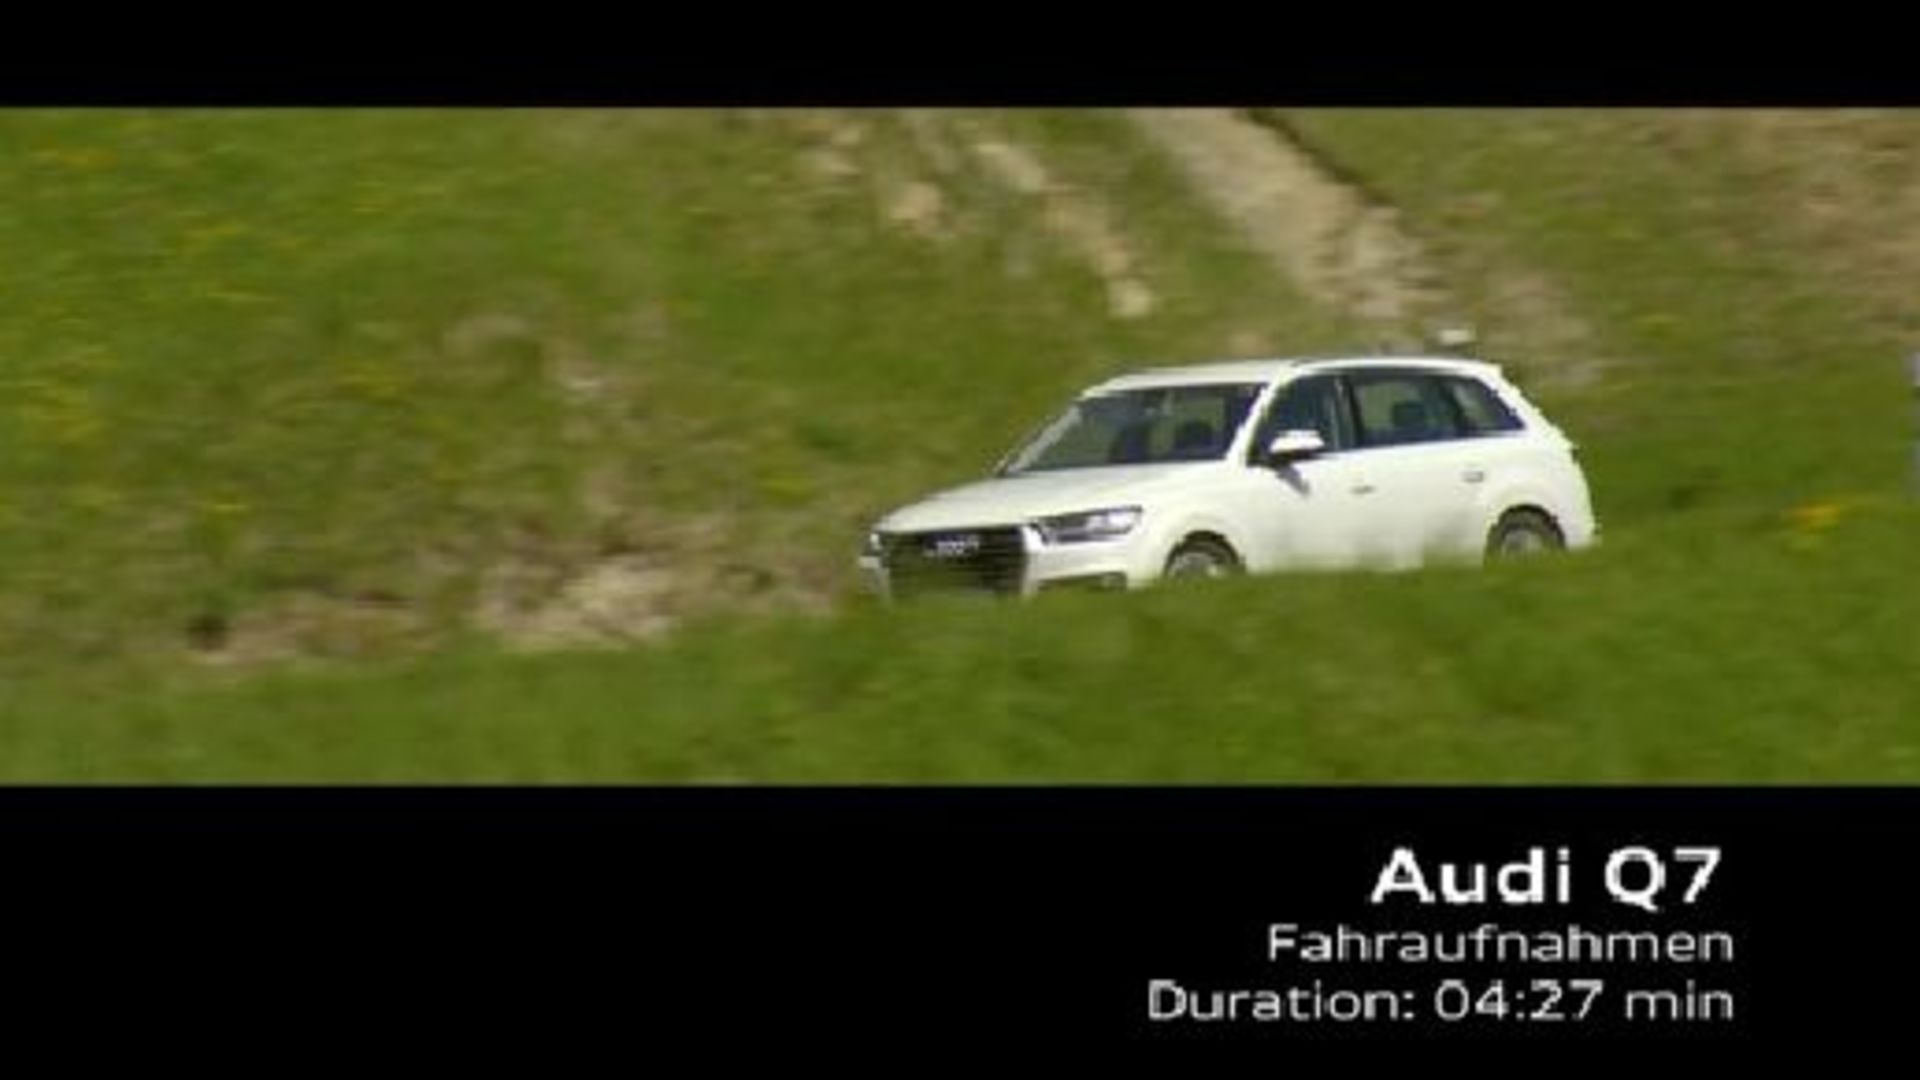 Audi Q7 Driving Shots - Footage